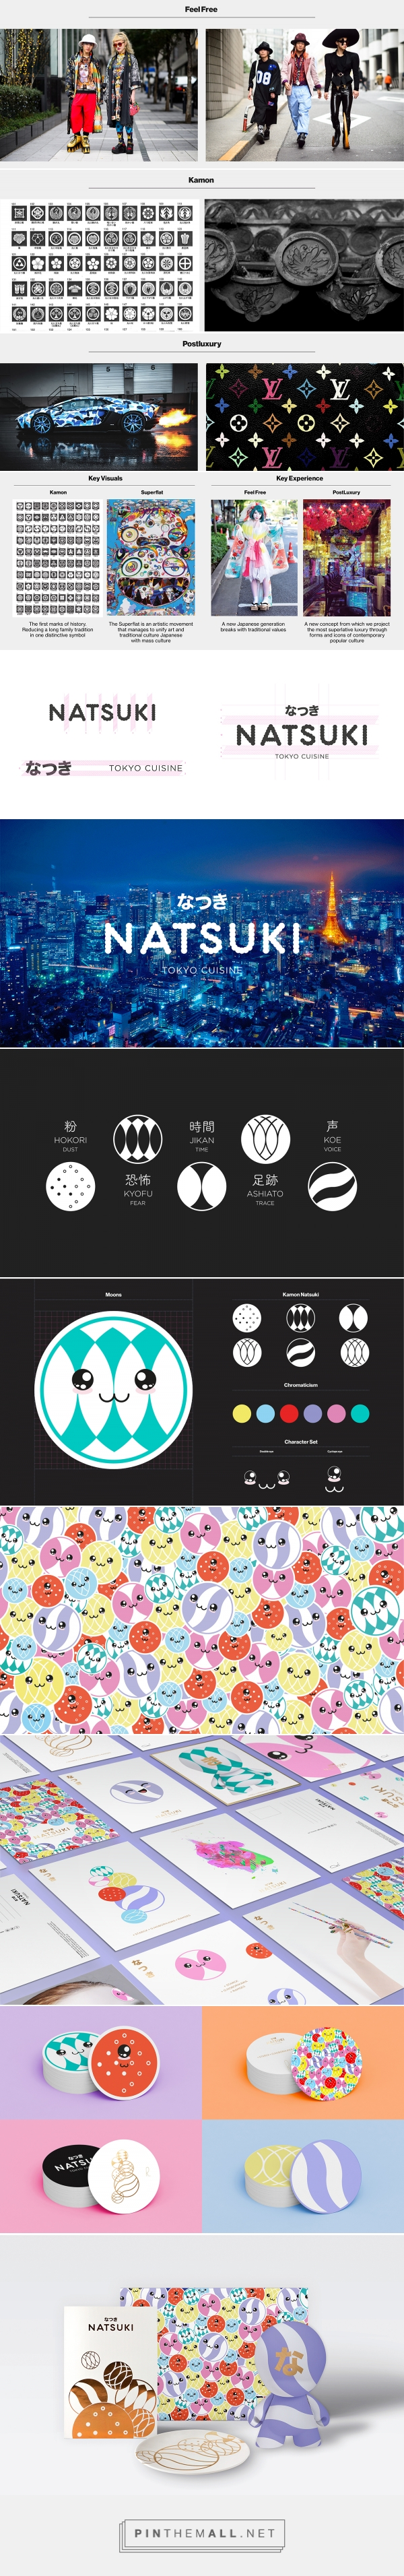 NATSUKI. THE JAPANESE OF THE 21st CENTURY on Behance - created via https://pinthemall.net